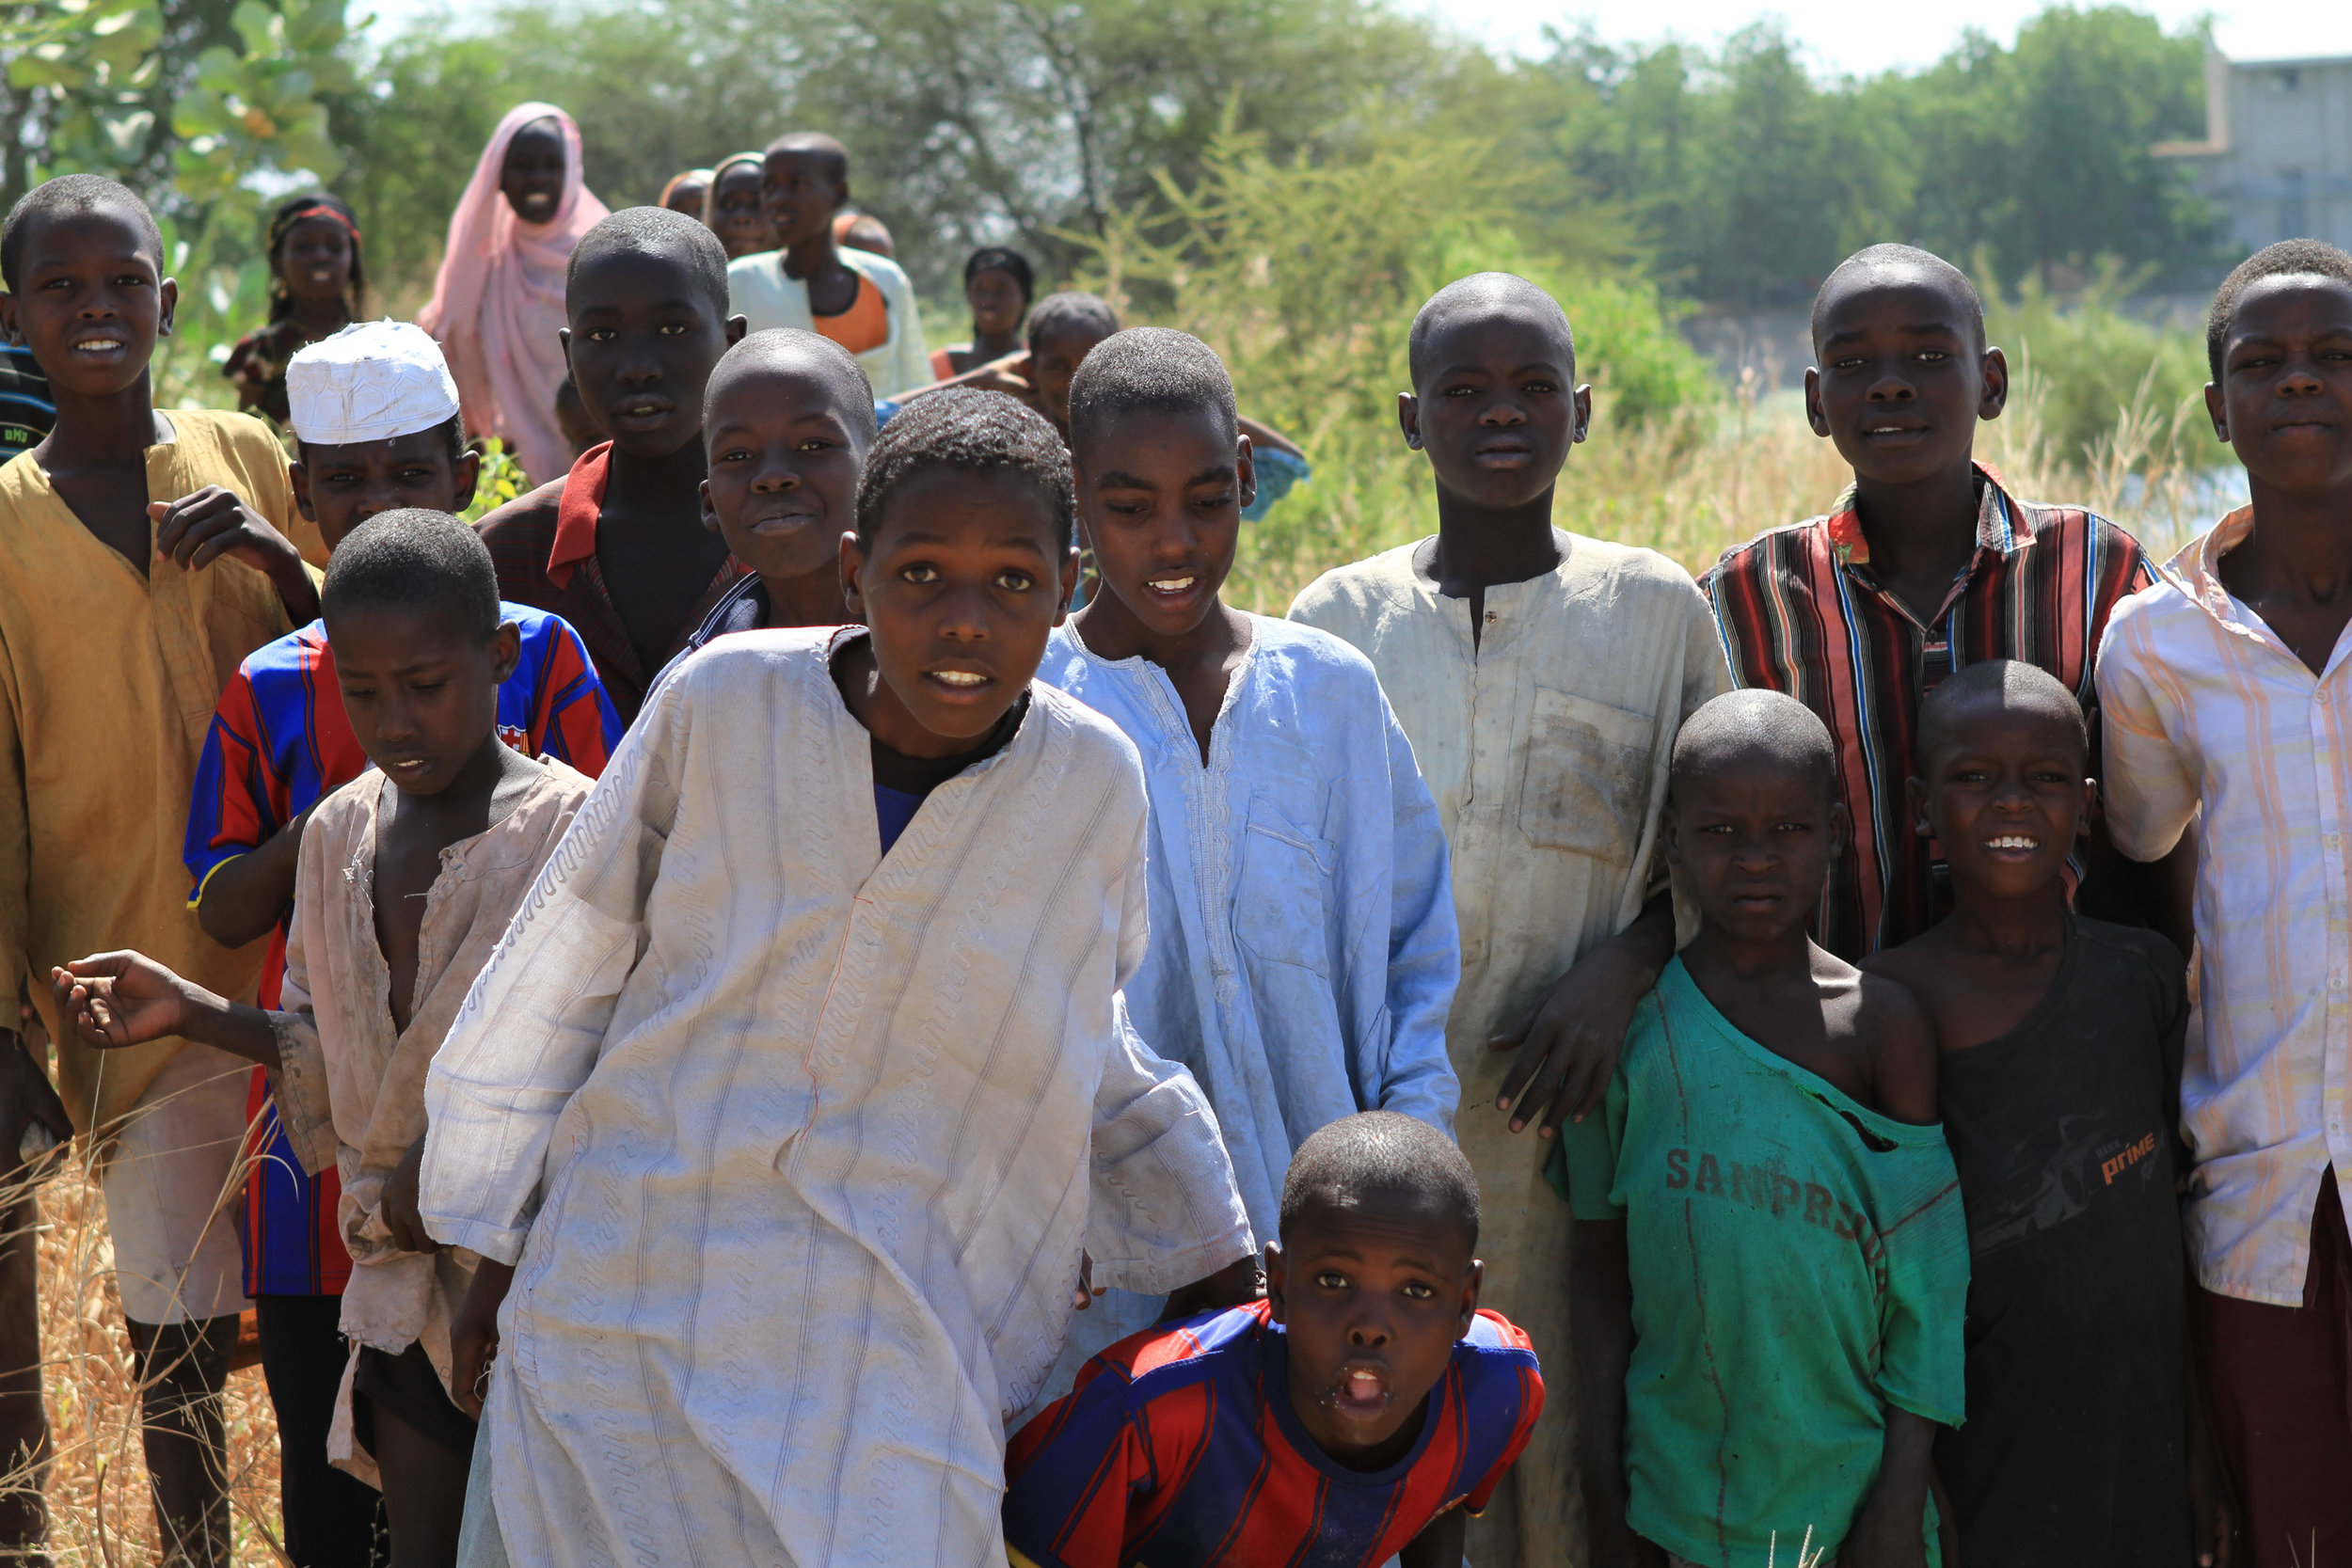 We take a boat up a canal towards Lake Chad. These boys were gathered on the shore to say hello. I'm certain this area has been badly hit by Boko Haram.